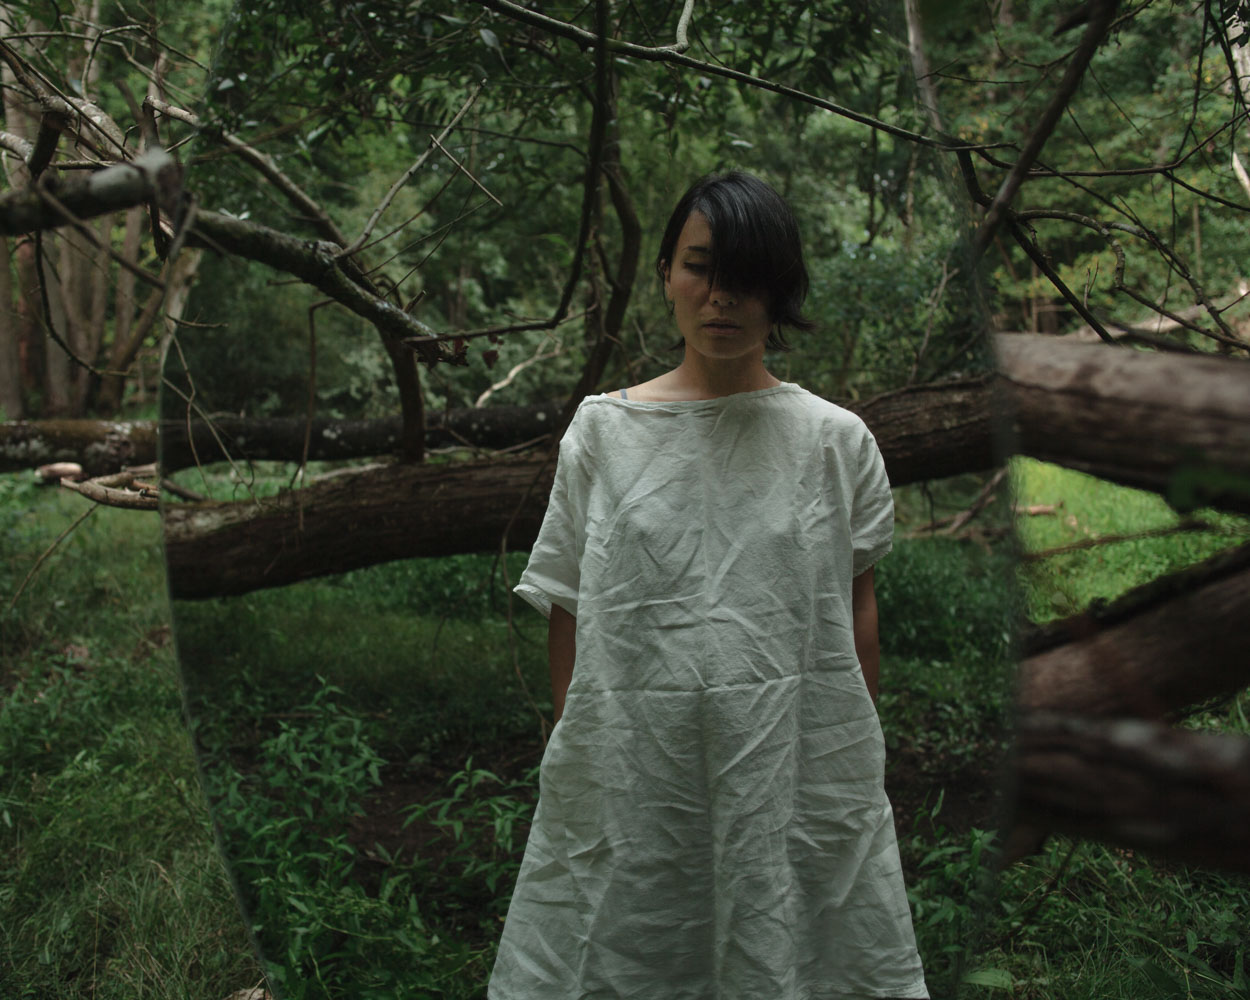 Photograph of a woman reflecting in a mirror in a forest.